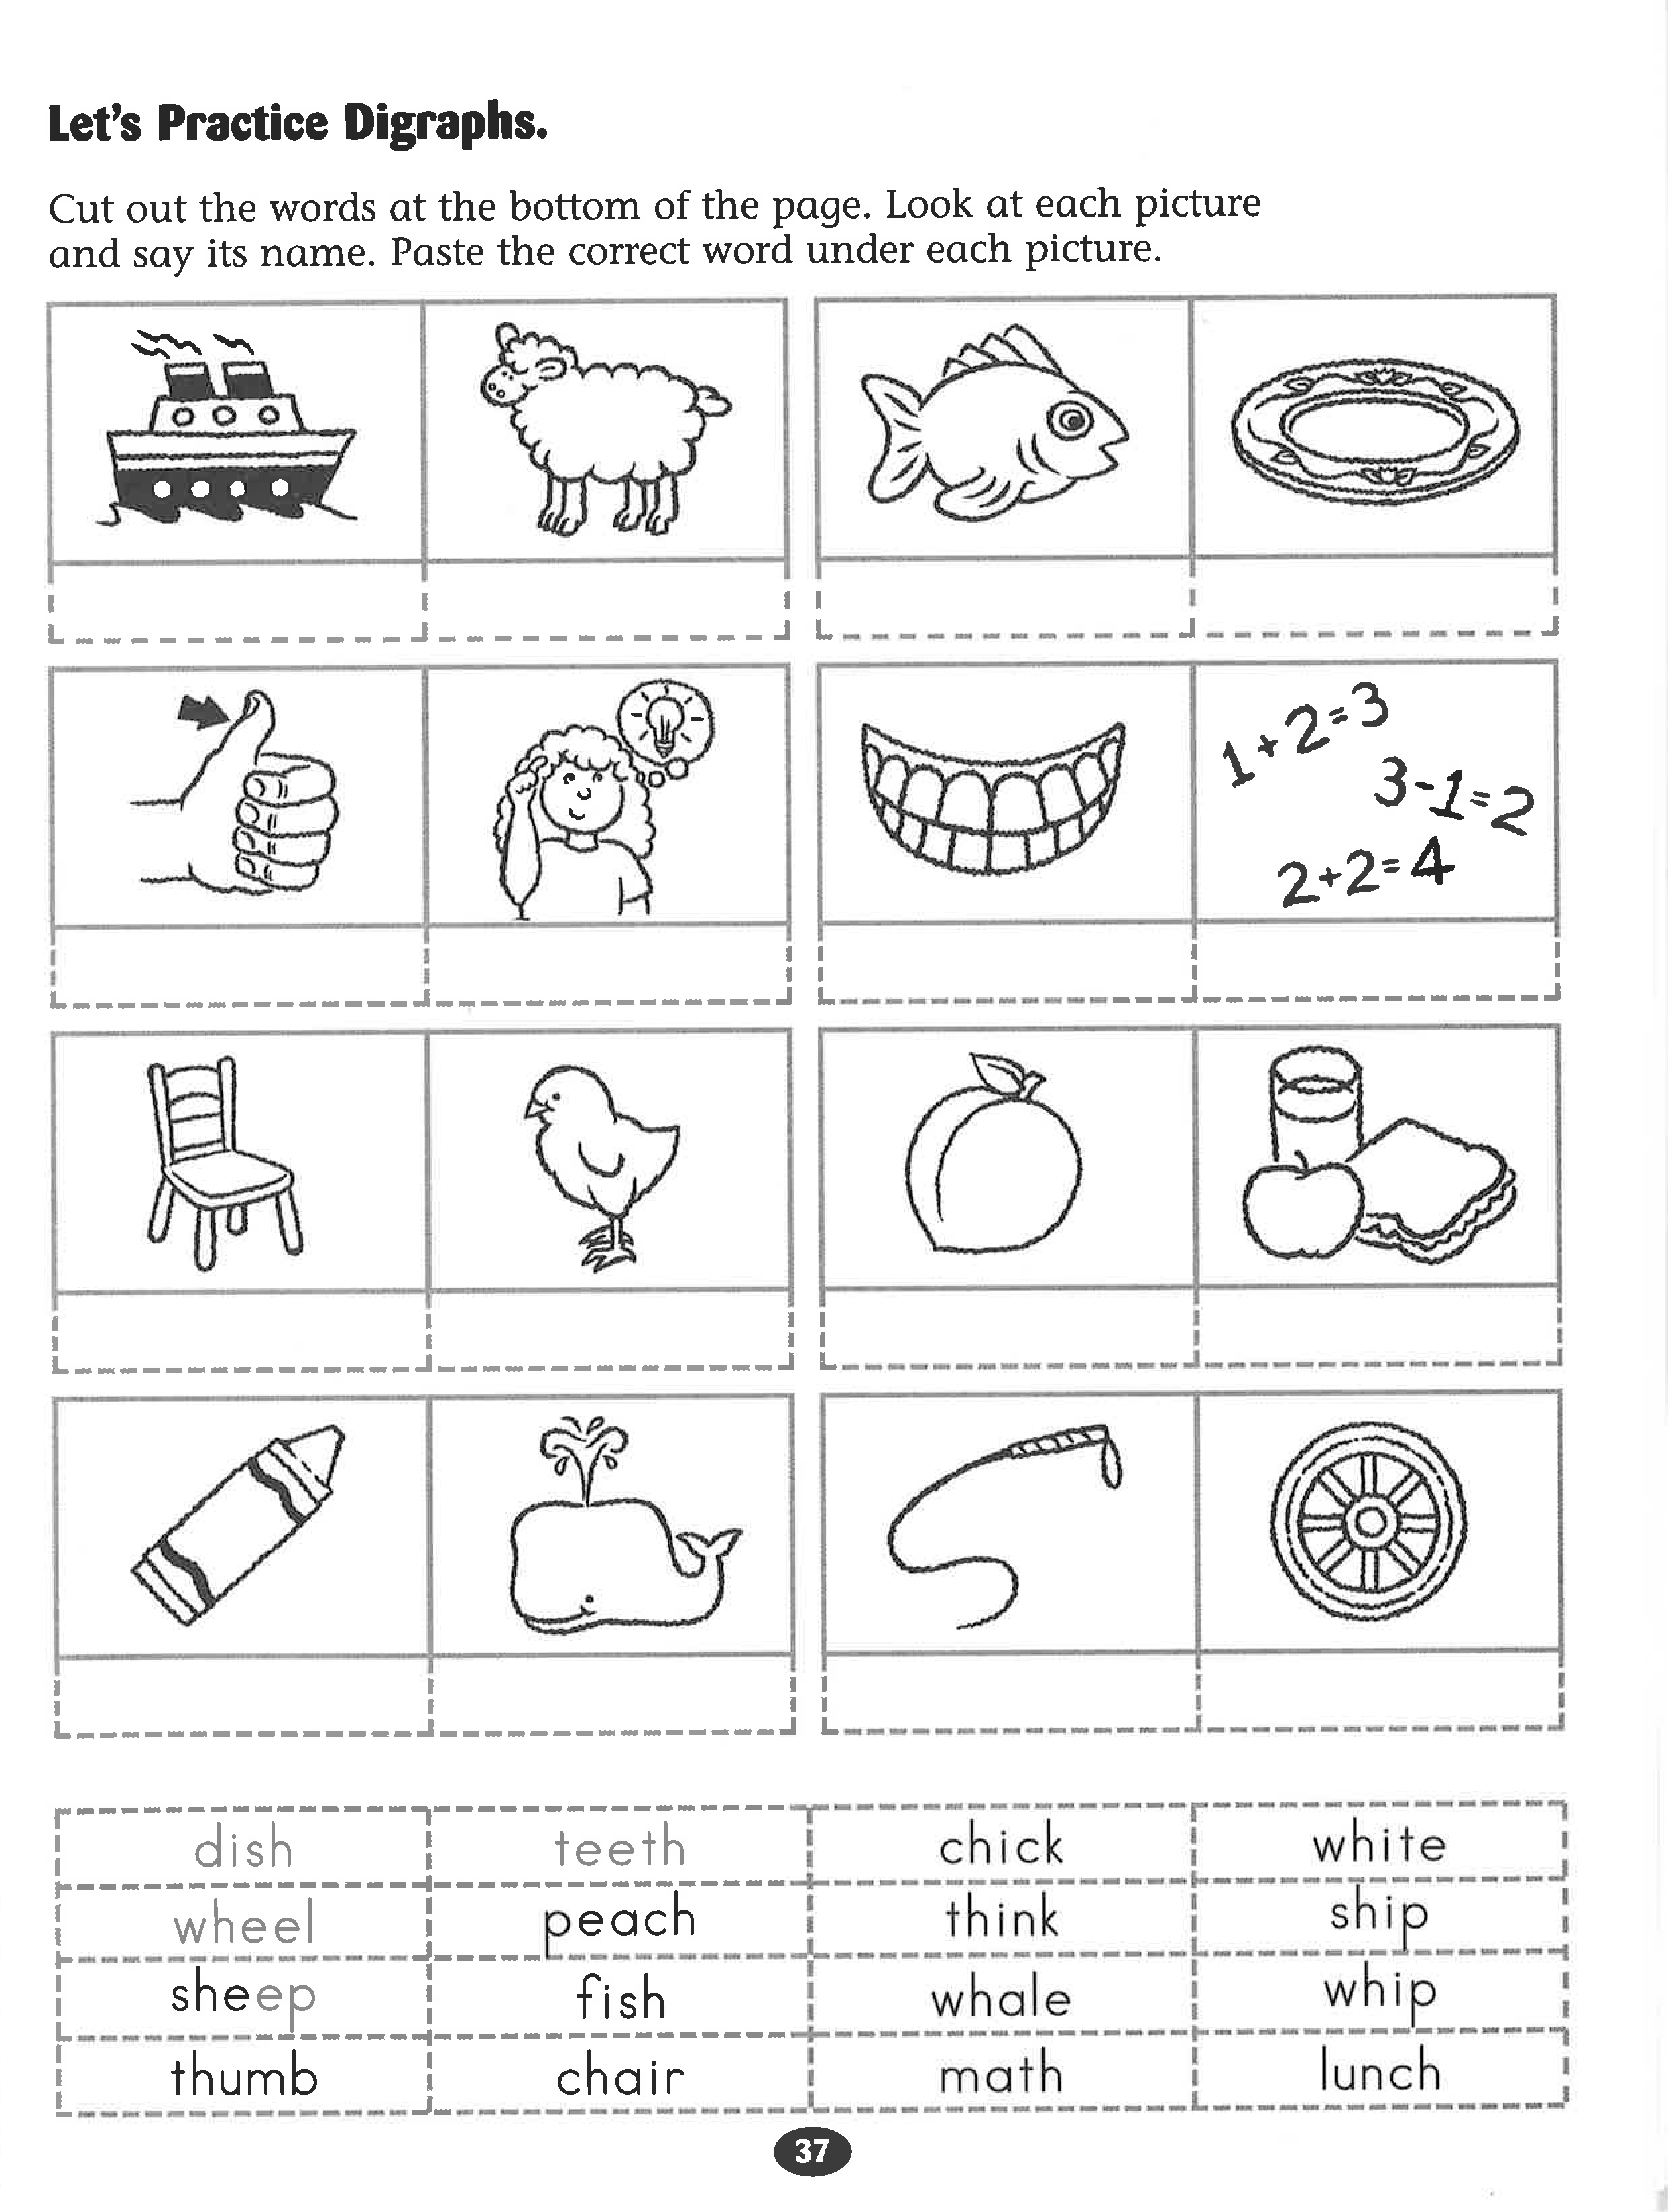 Worksheets Digraphs Worksheets lets practice digraphs worksheet rockin reader pinterest worksheet